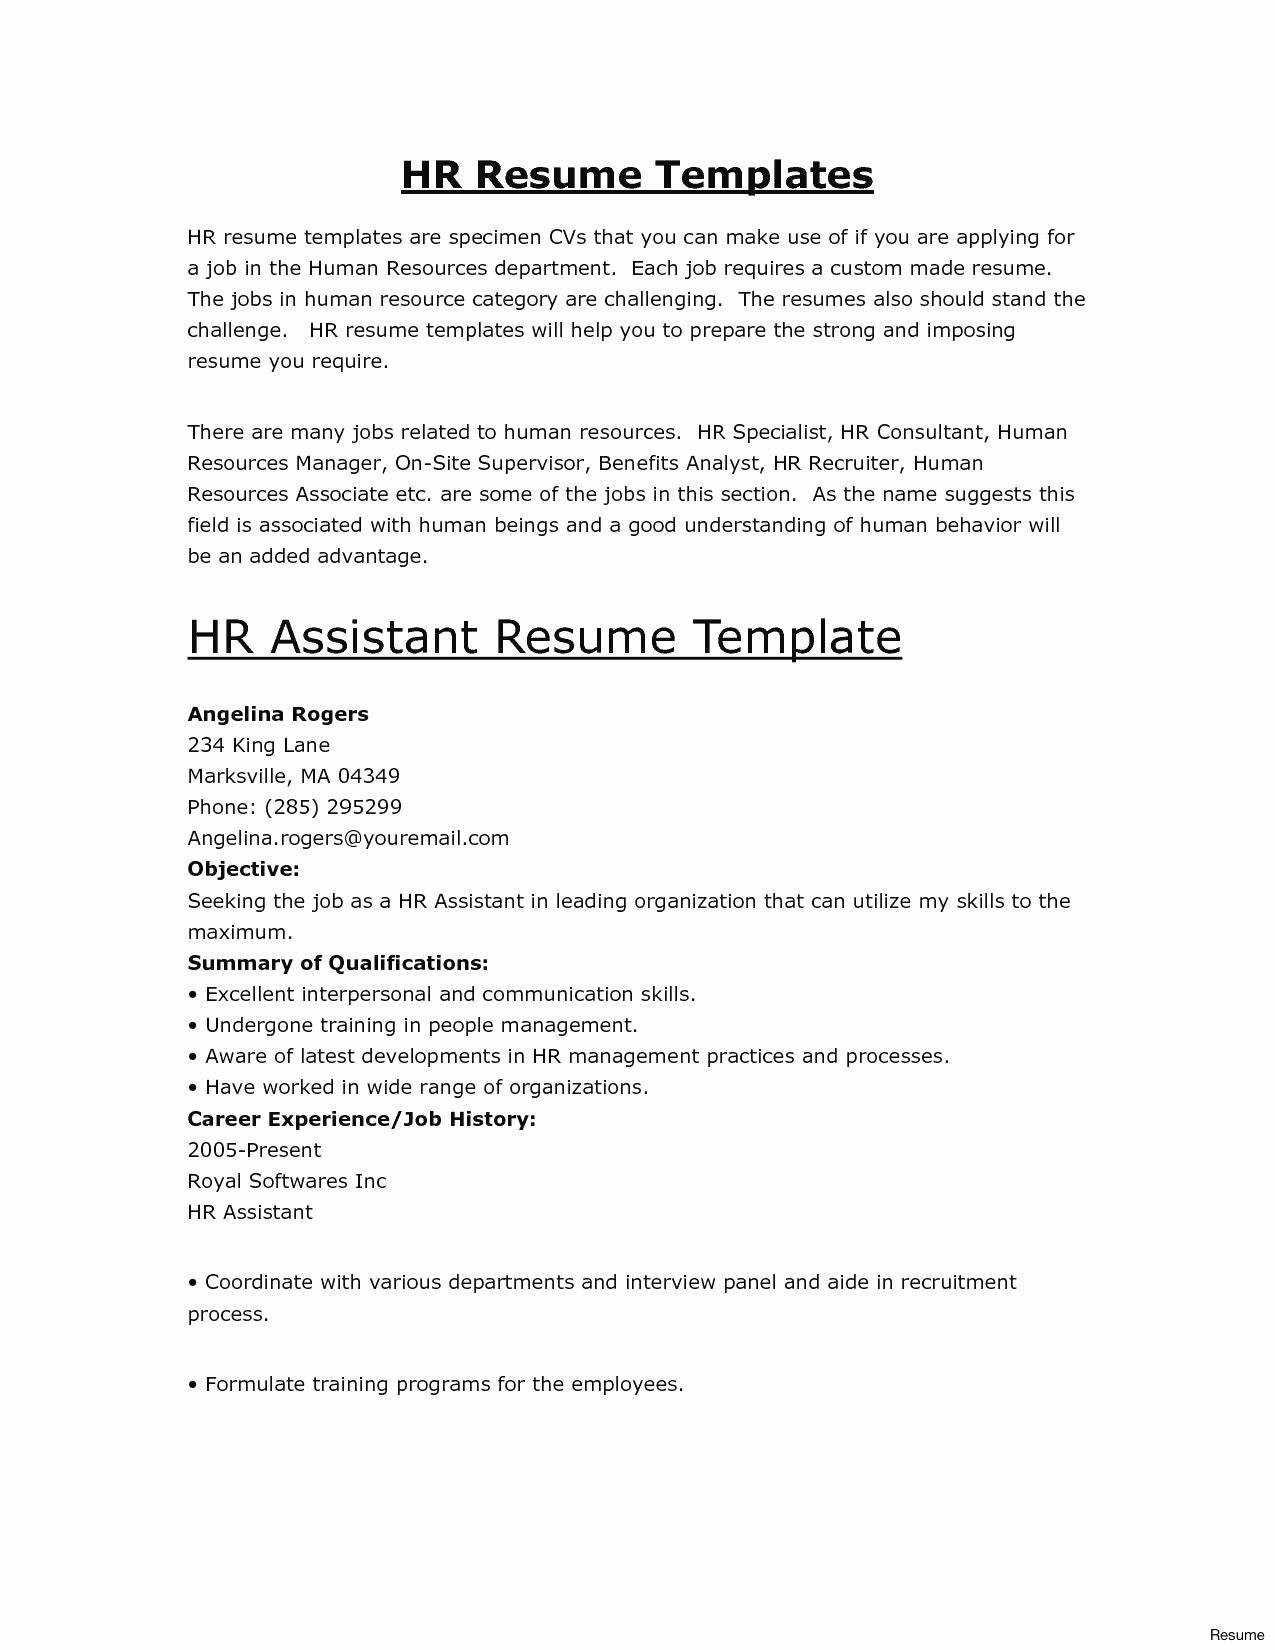 Paralegal Resume Skills - Paralegal Resume Objective Best Expert Report Writing Course